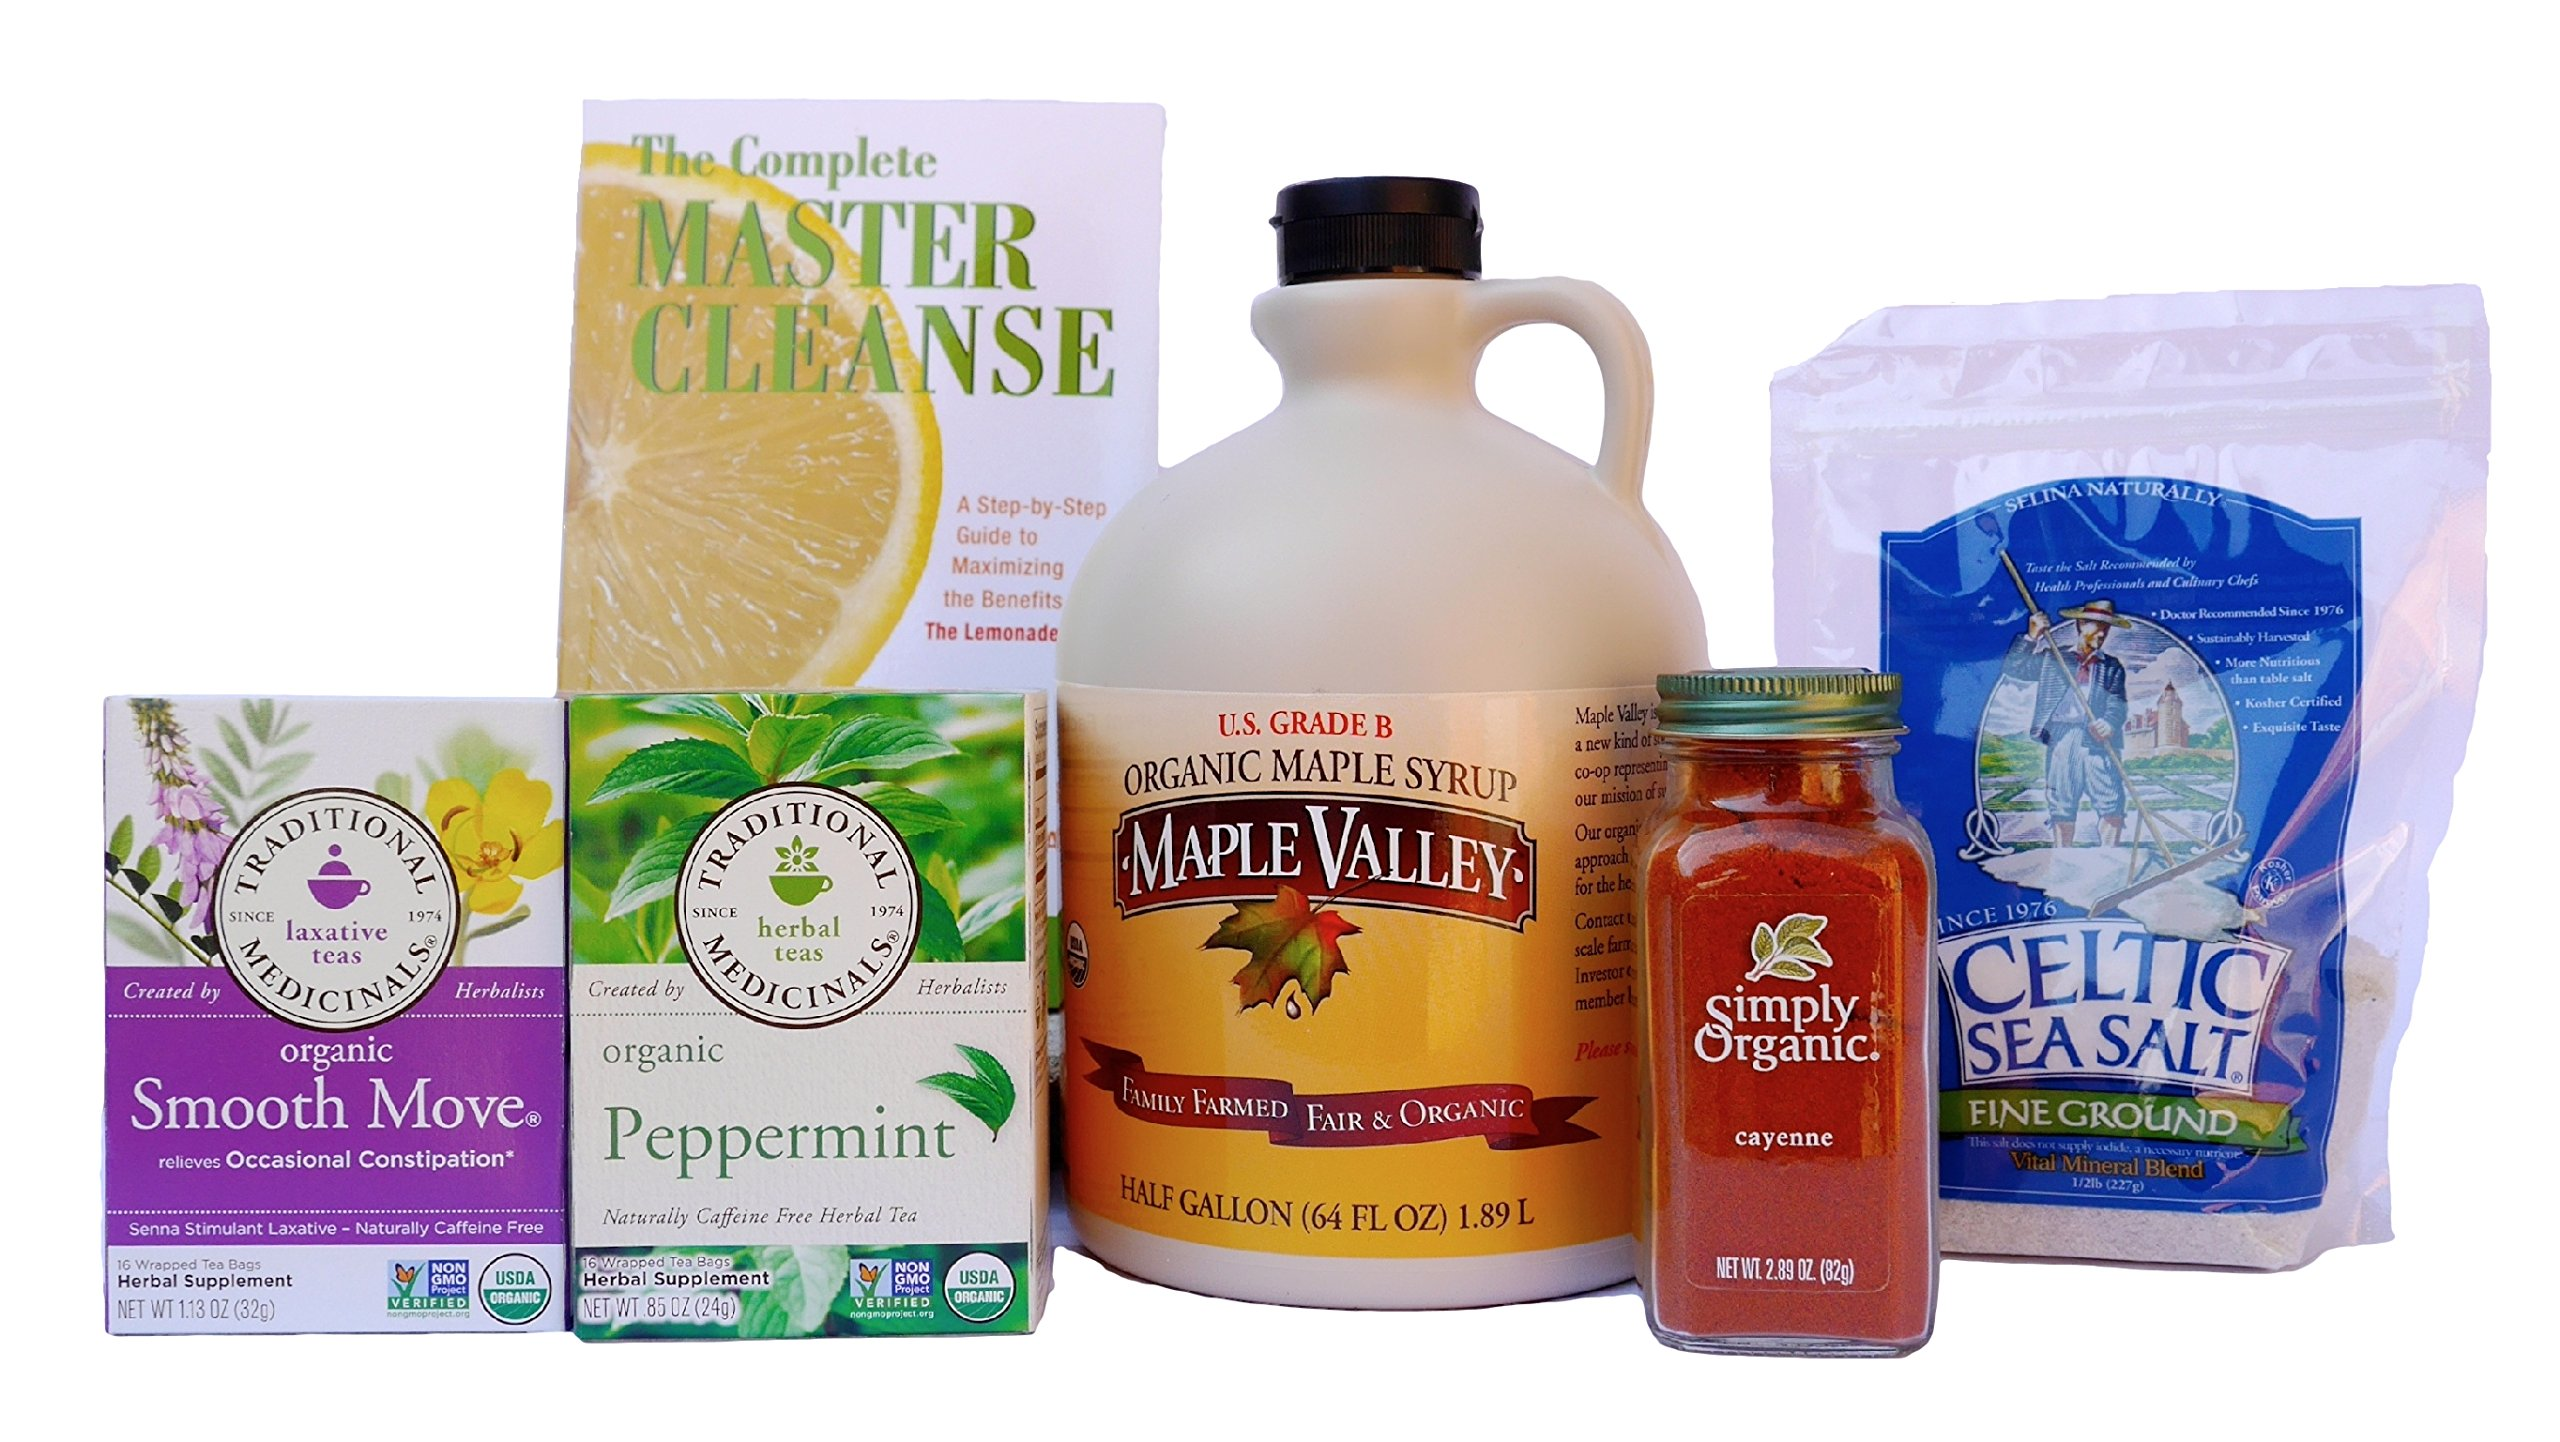 Maple Valley 10 Day Organic Master Cleanse Lemonade Detox / Diet Kit with Book The Complete Master Cleanse